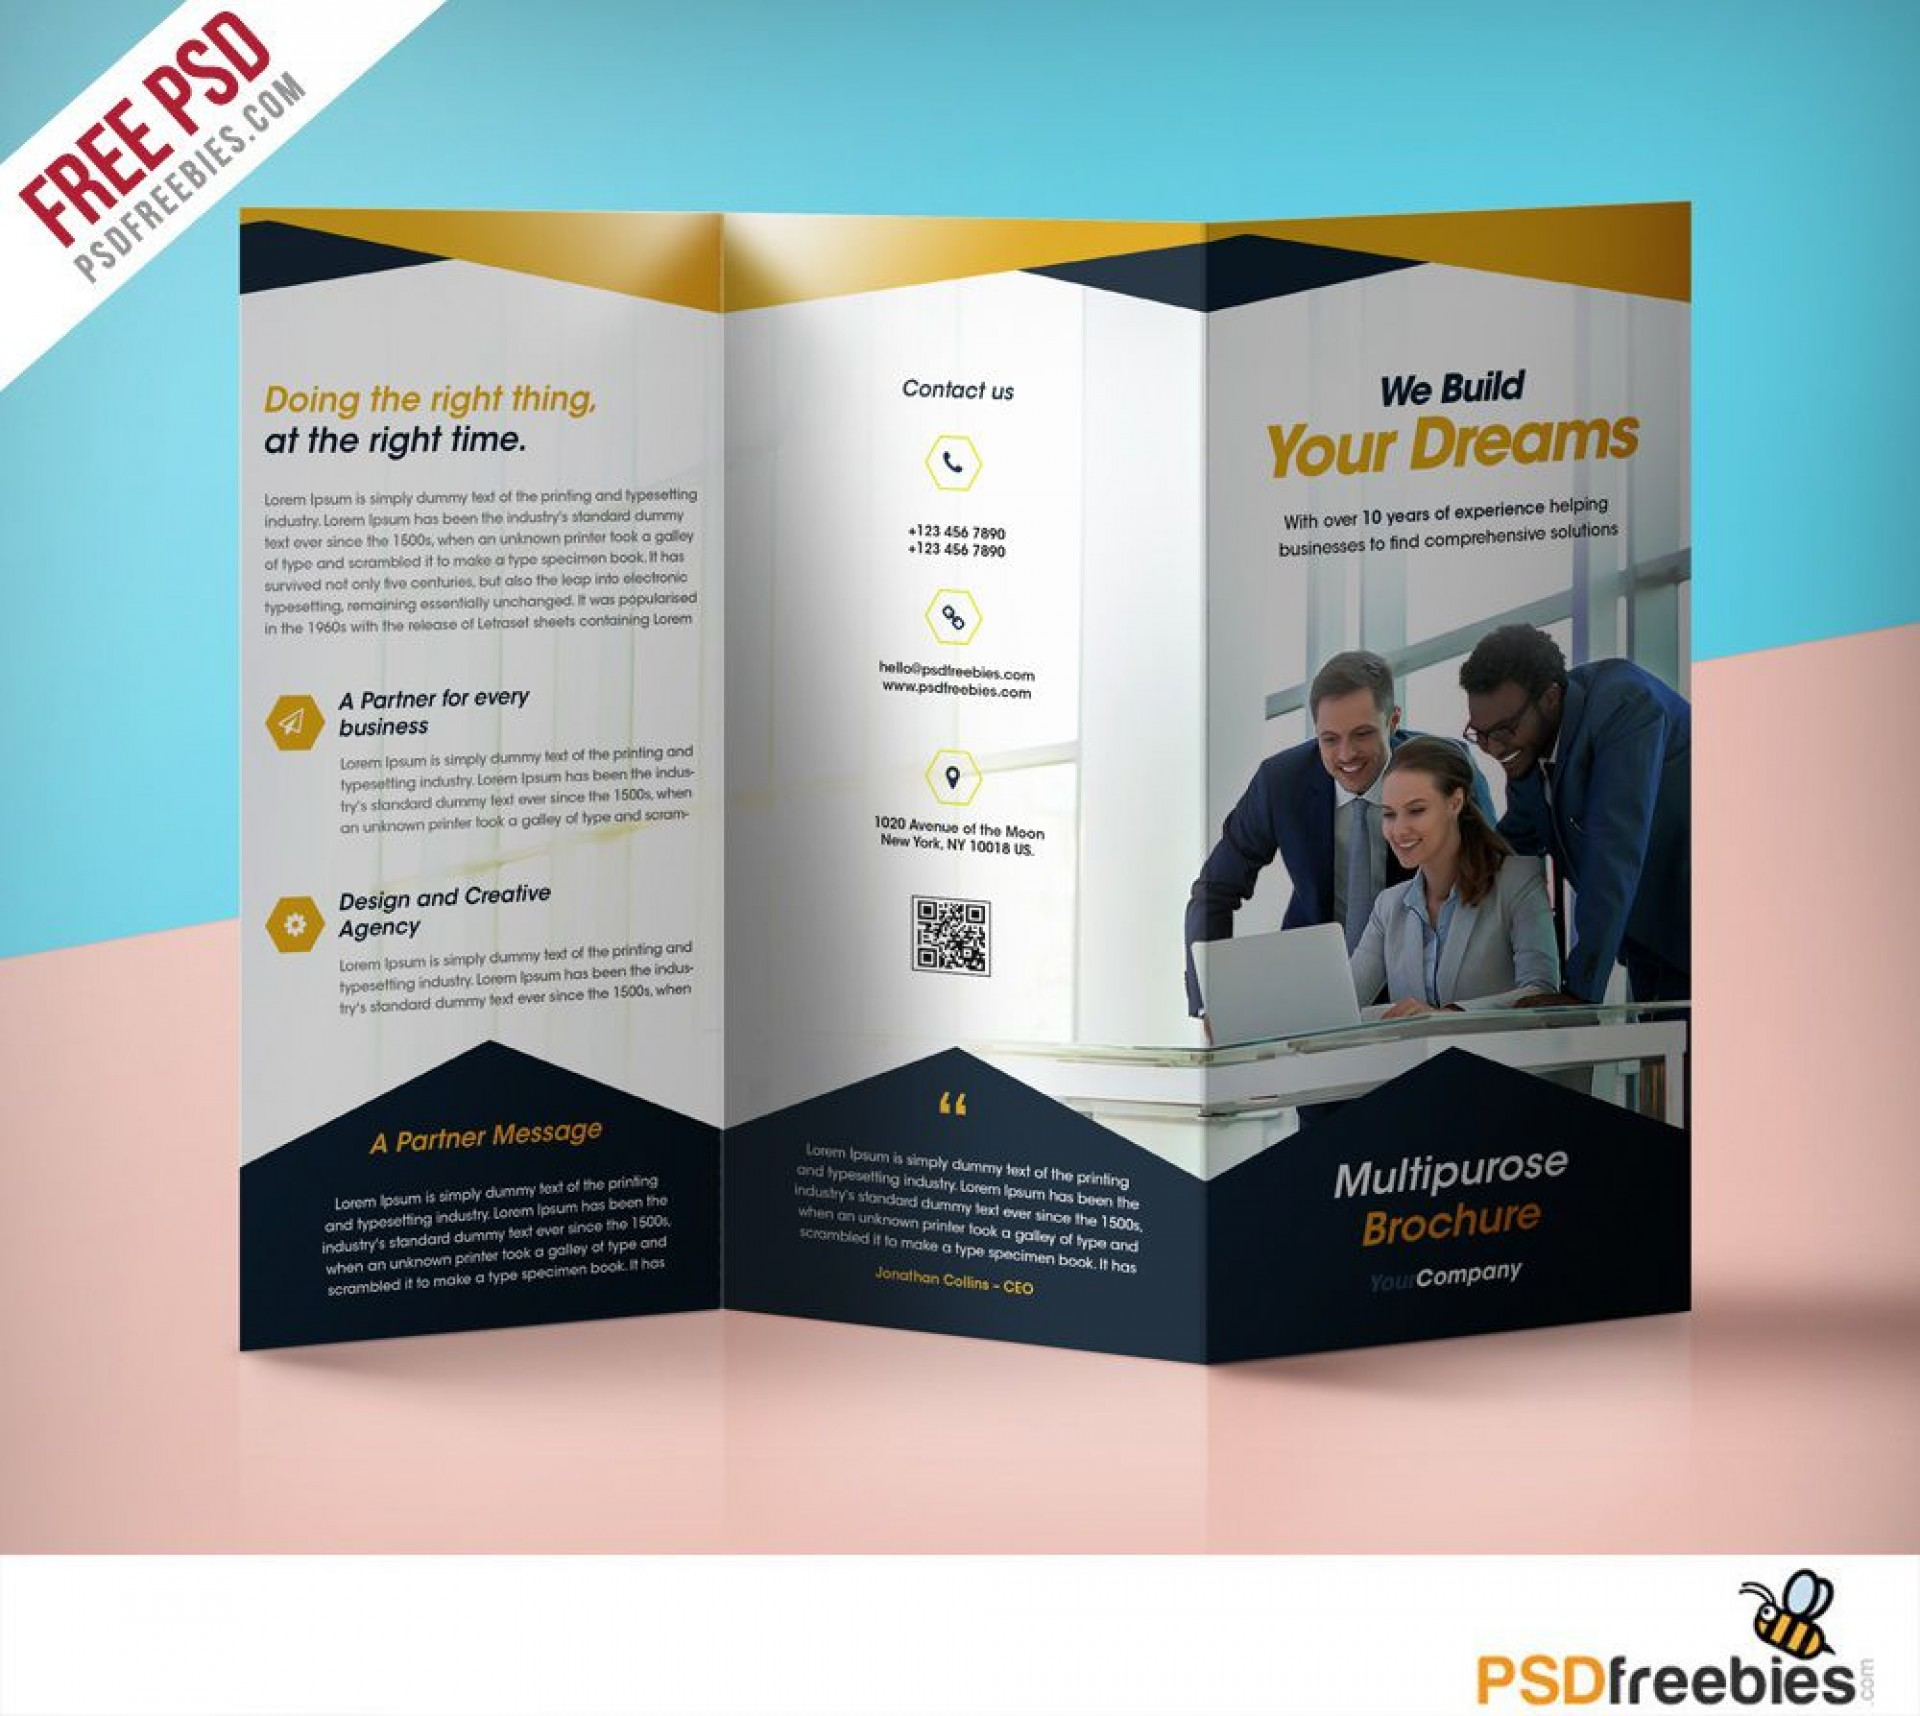 009 Awesome Busines Brochure Design Template Free Download Image 1920